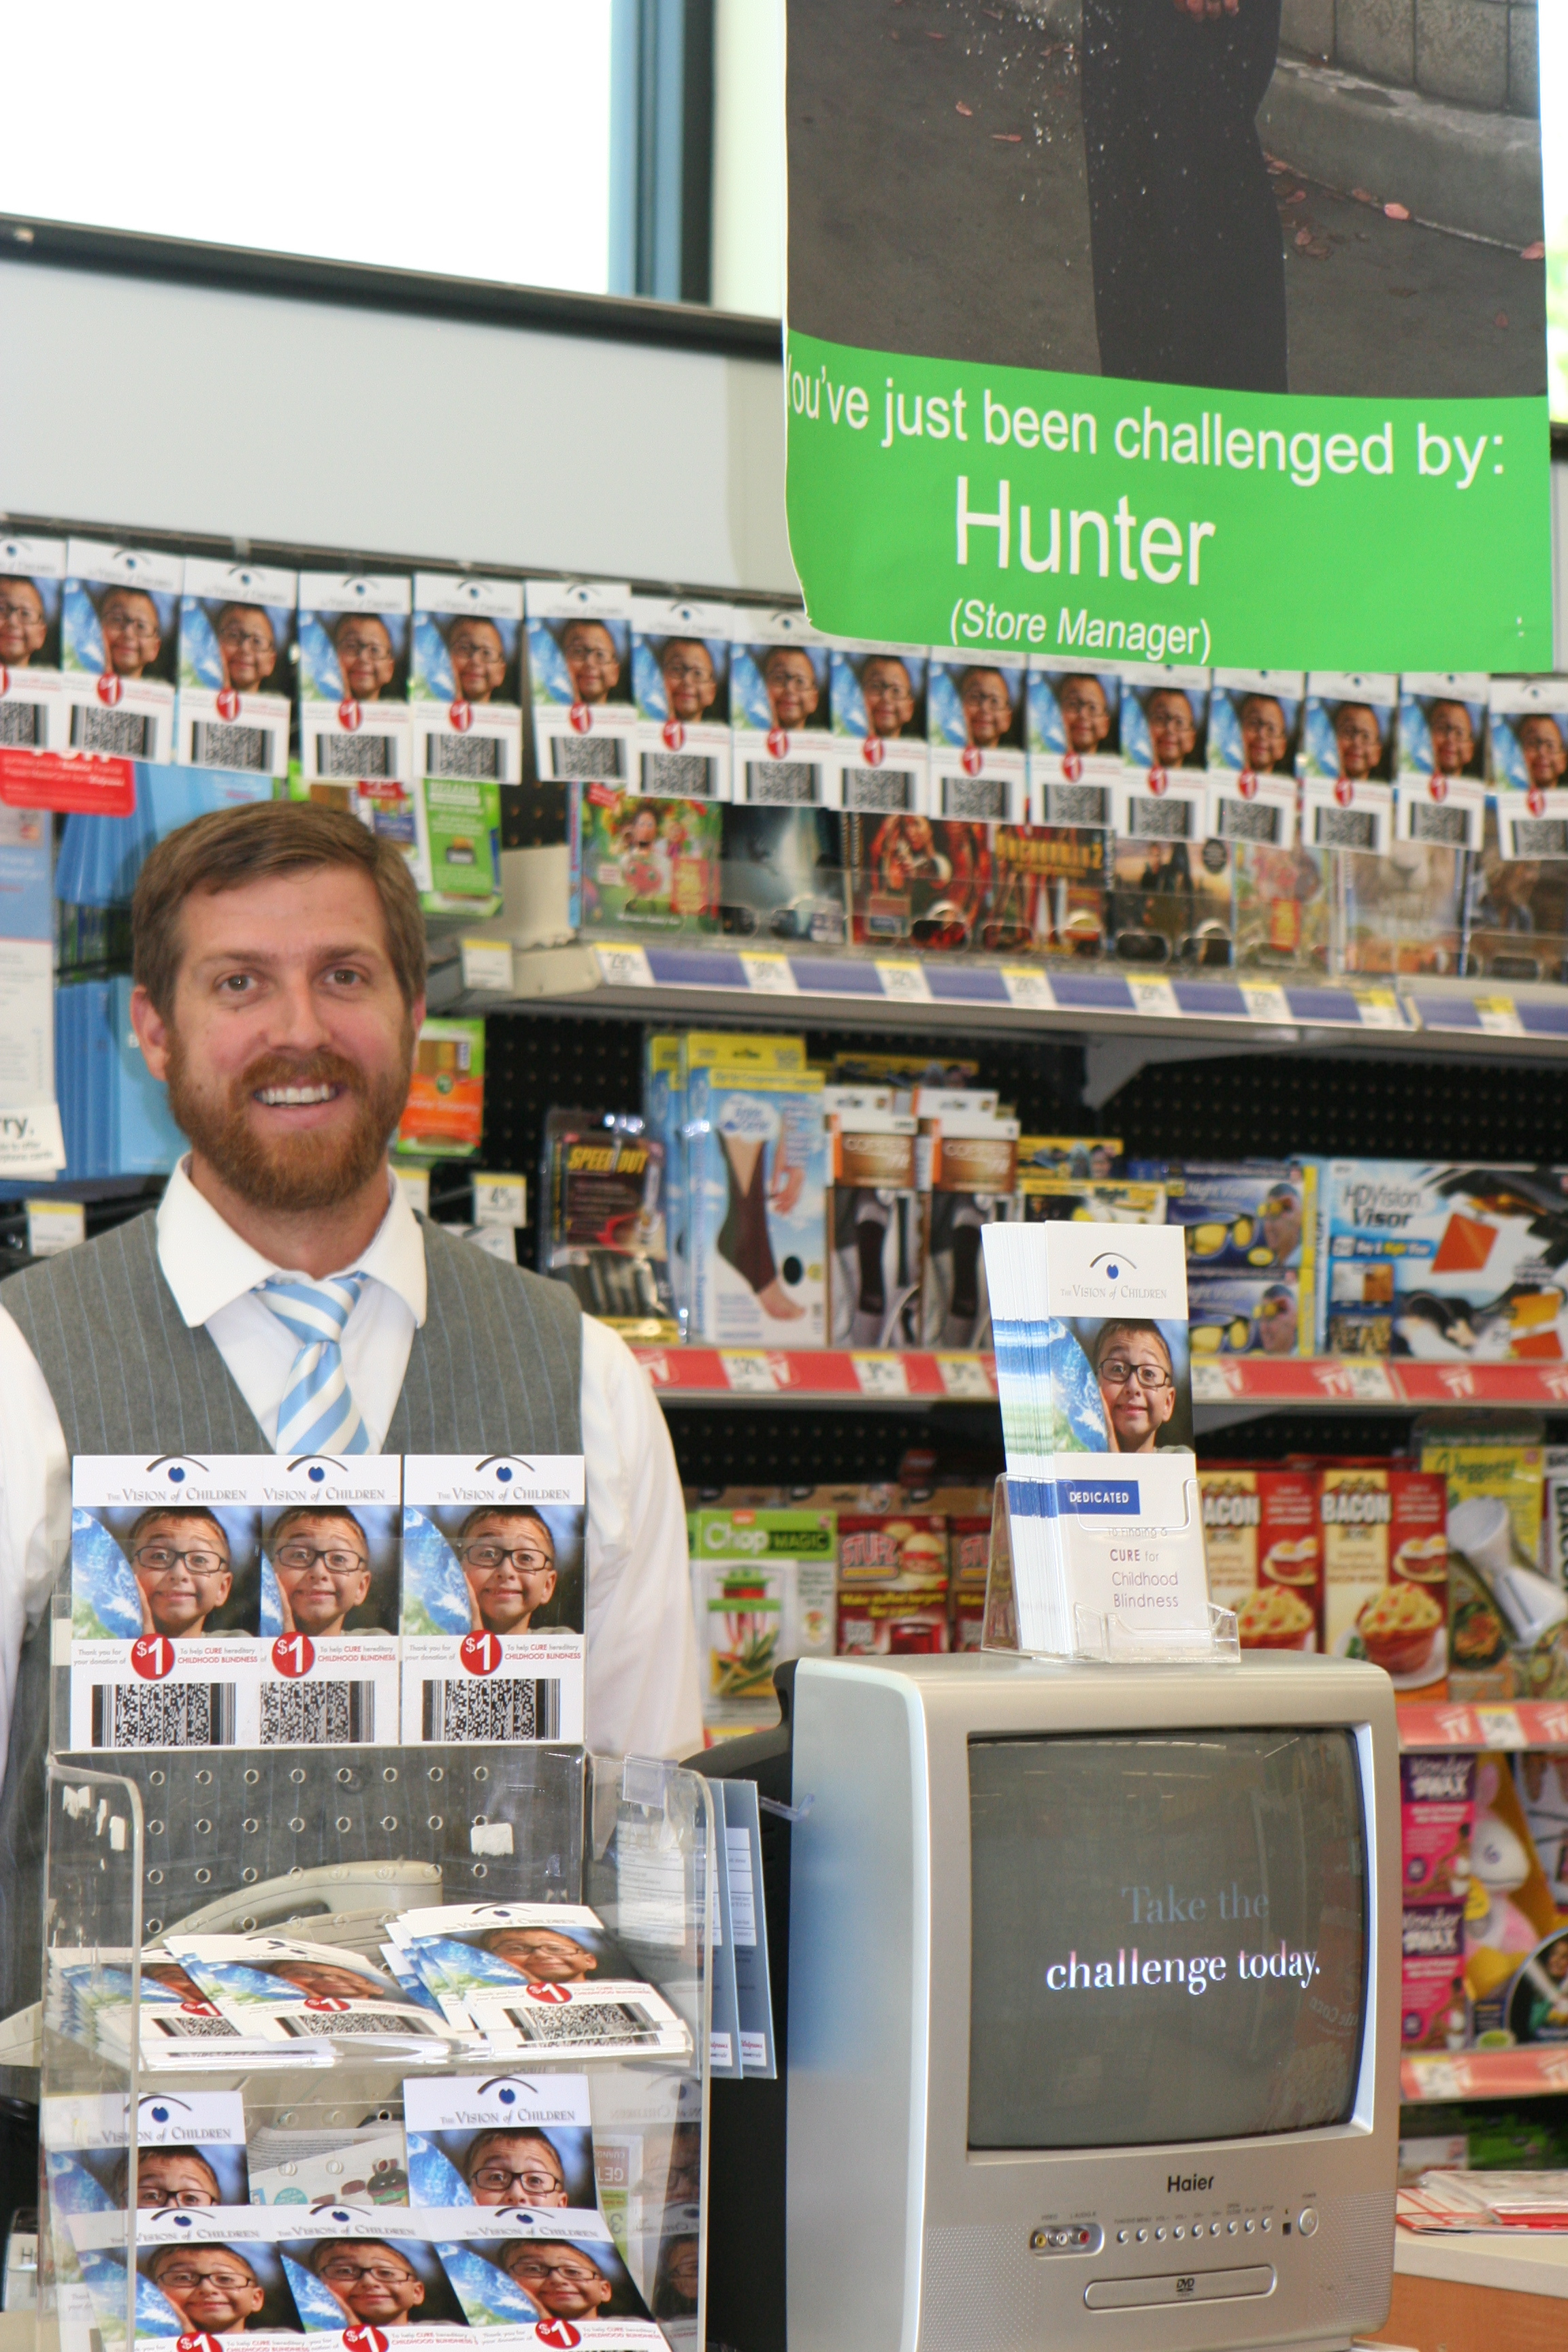 Store Manager, Hunter Richmond, stands next to the display of the VOC Challenge video and donate cards.